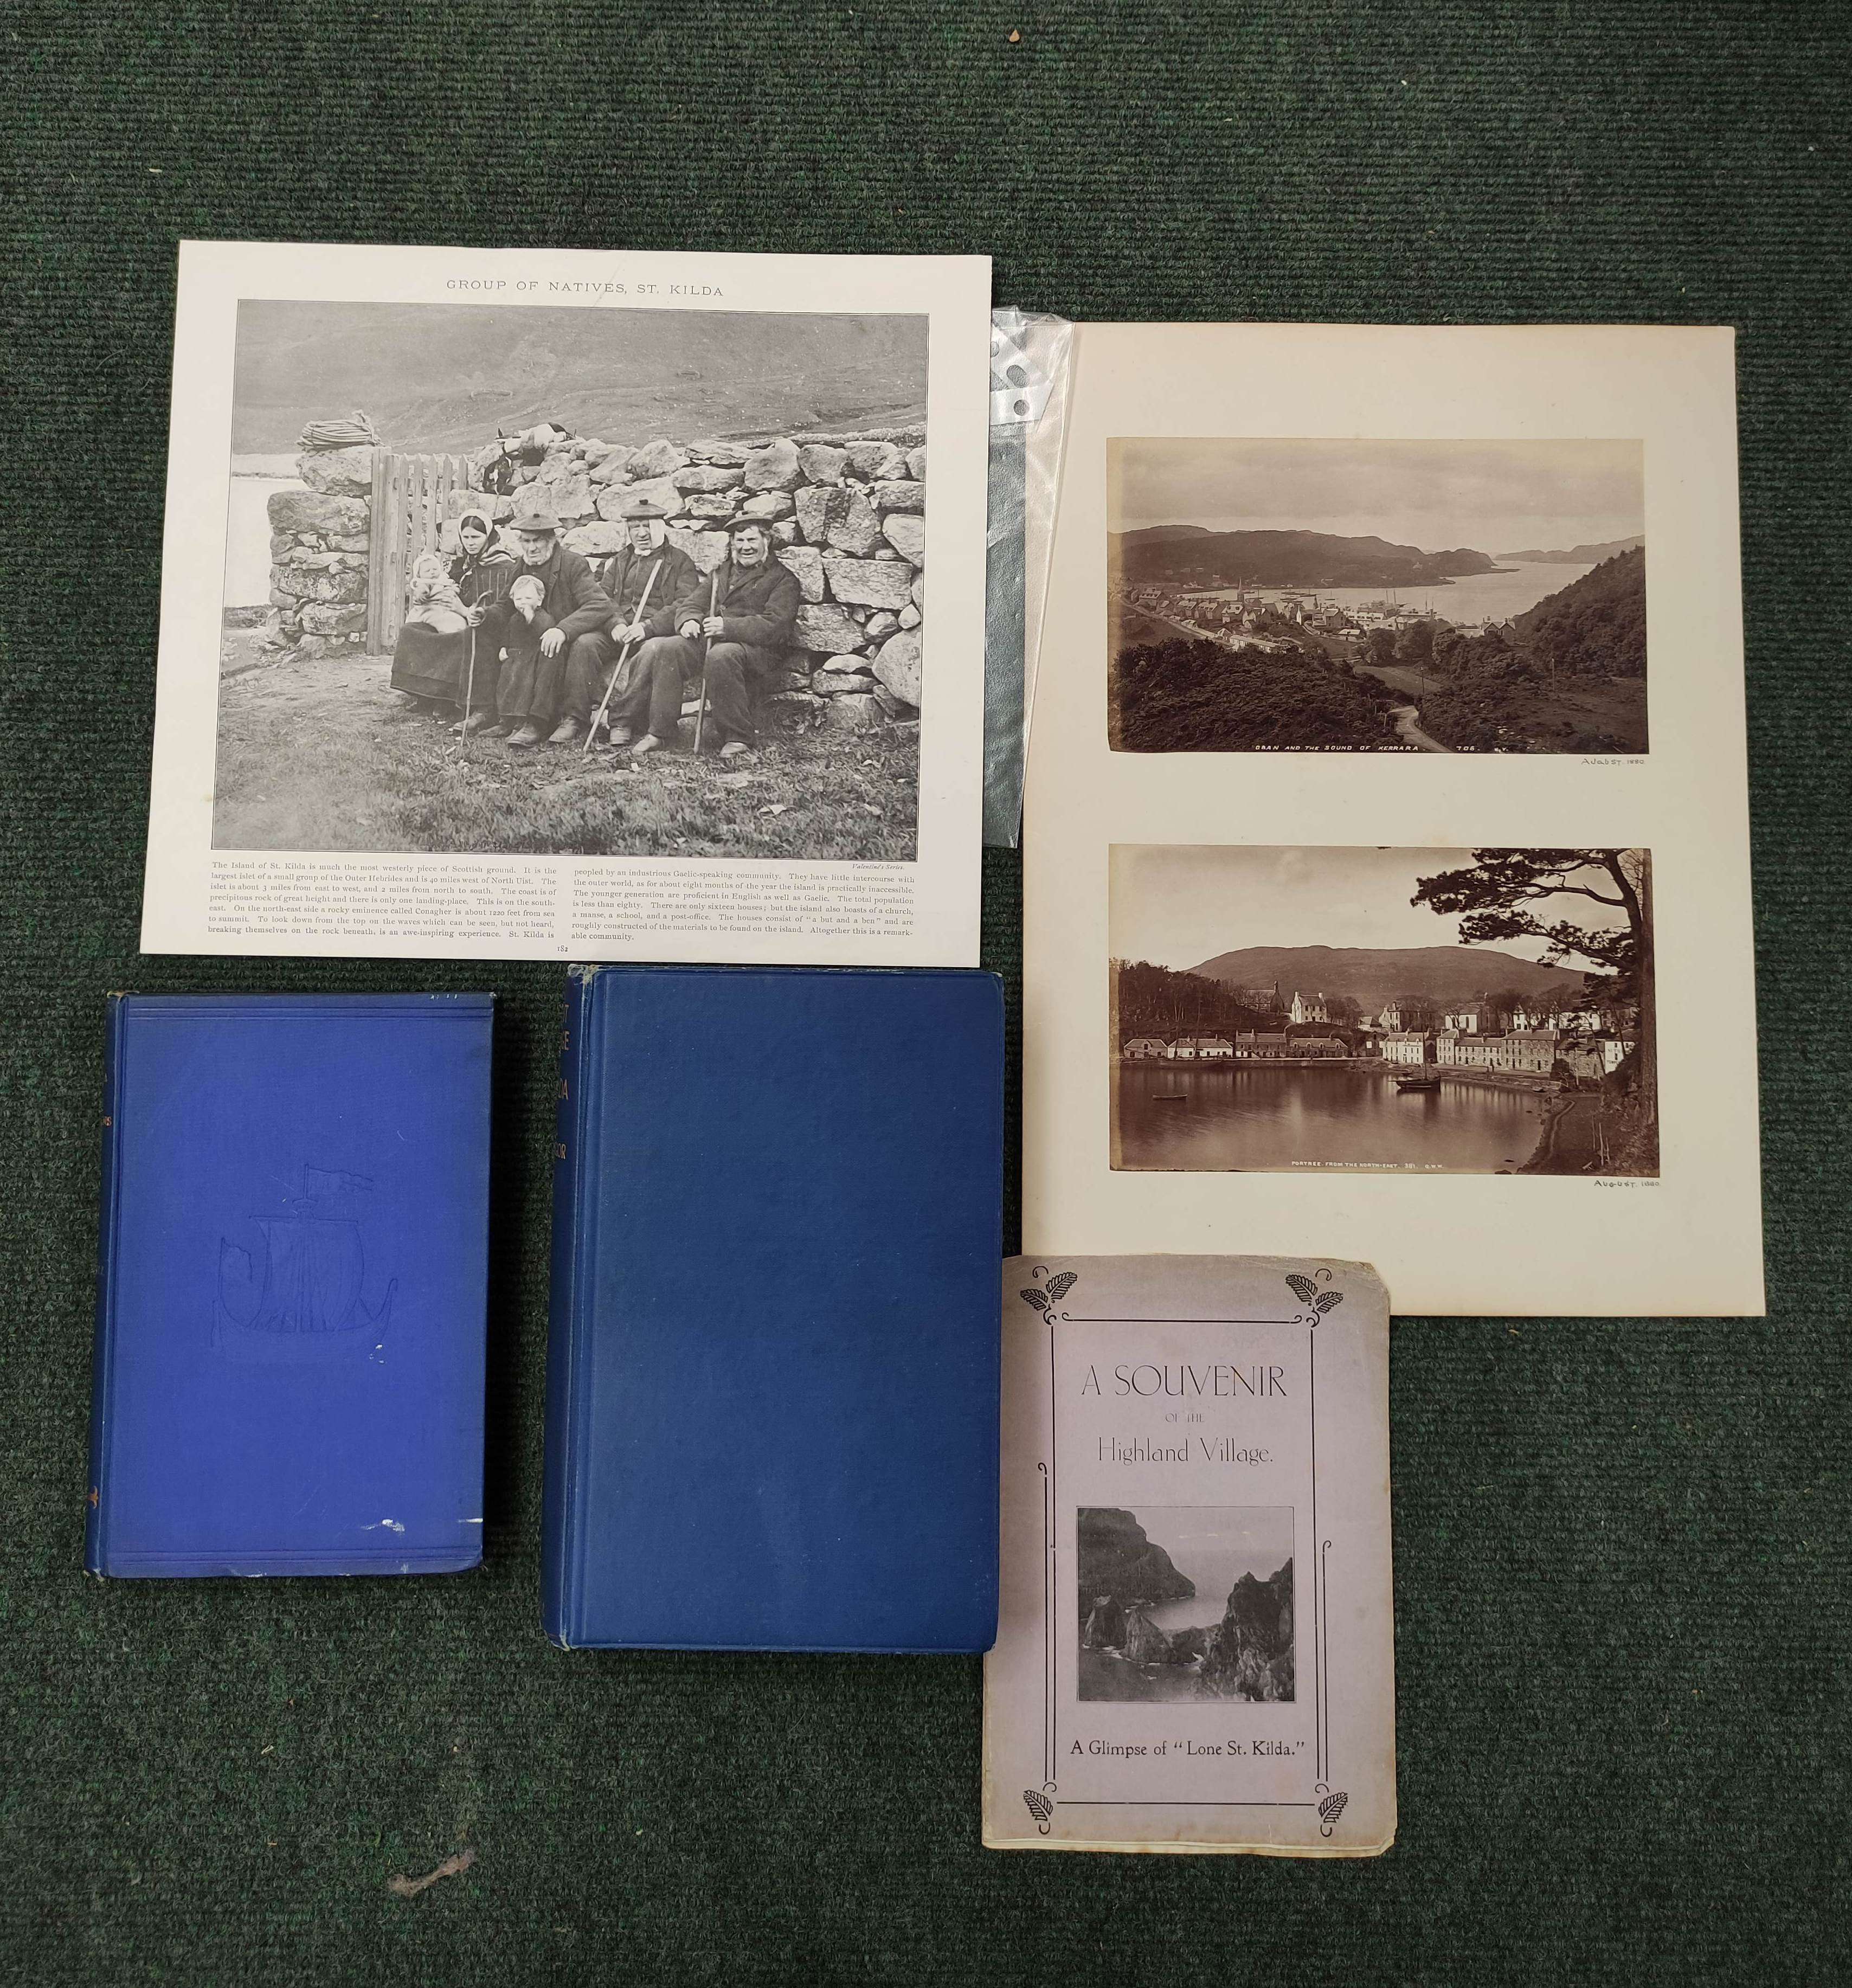 CONNELL ROBERT.St. Kilda & the St. Kildians.Orig. blue cloth. 1887; also one or two other items